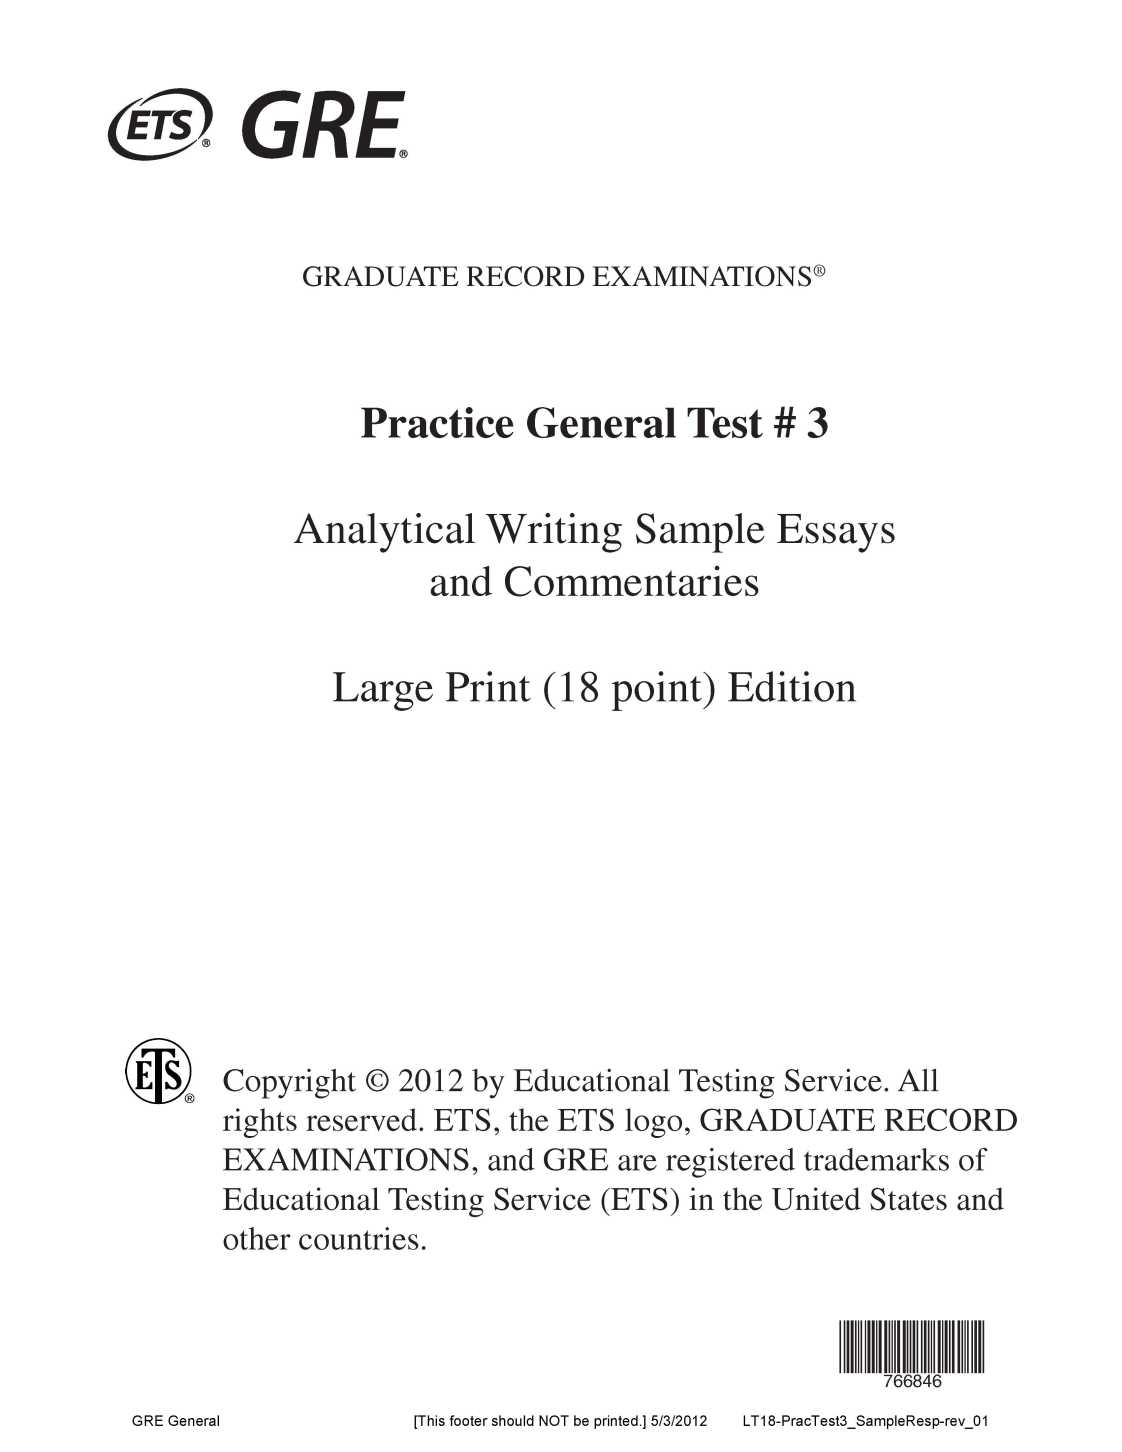 gre essays examples gre analytical writing writing the argument essay sample essays gre sample essays - Gre Essays Examples